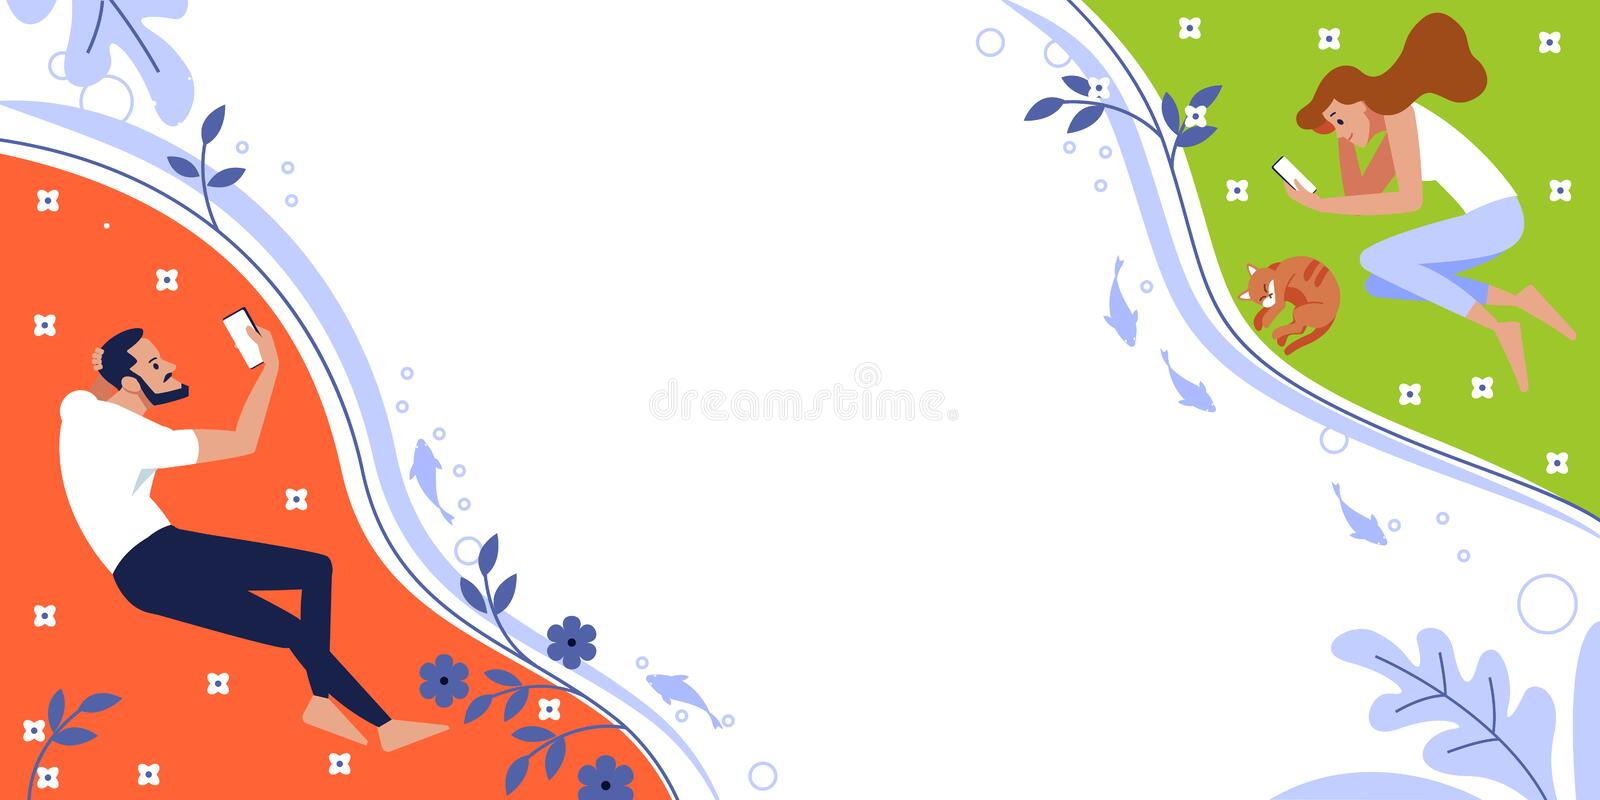 Online dating service, virtual communication and searching love in internet. Flat design. Communication via the Internet royalty free illustration